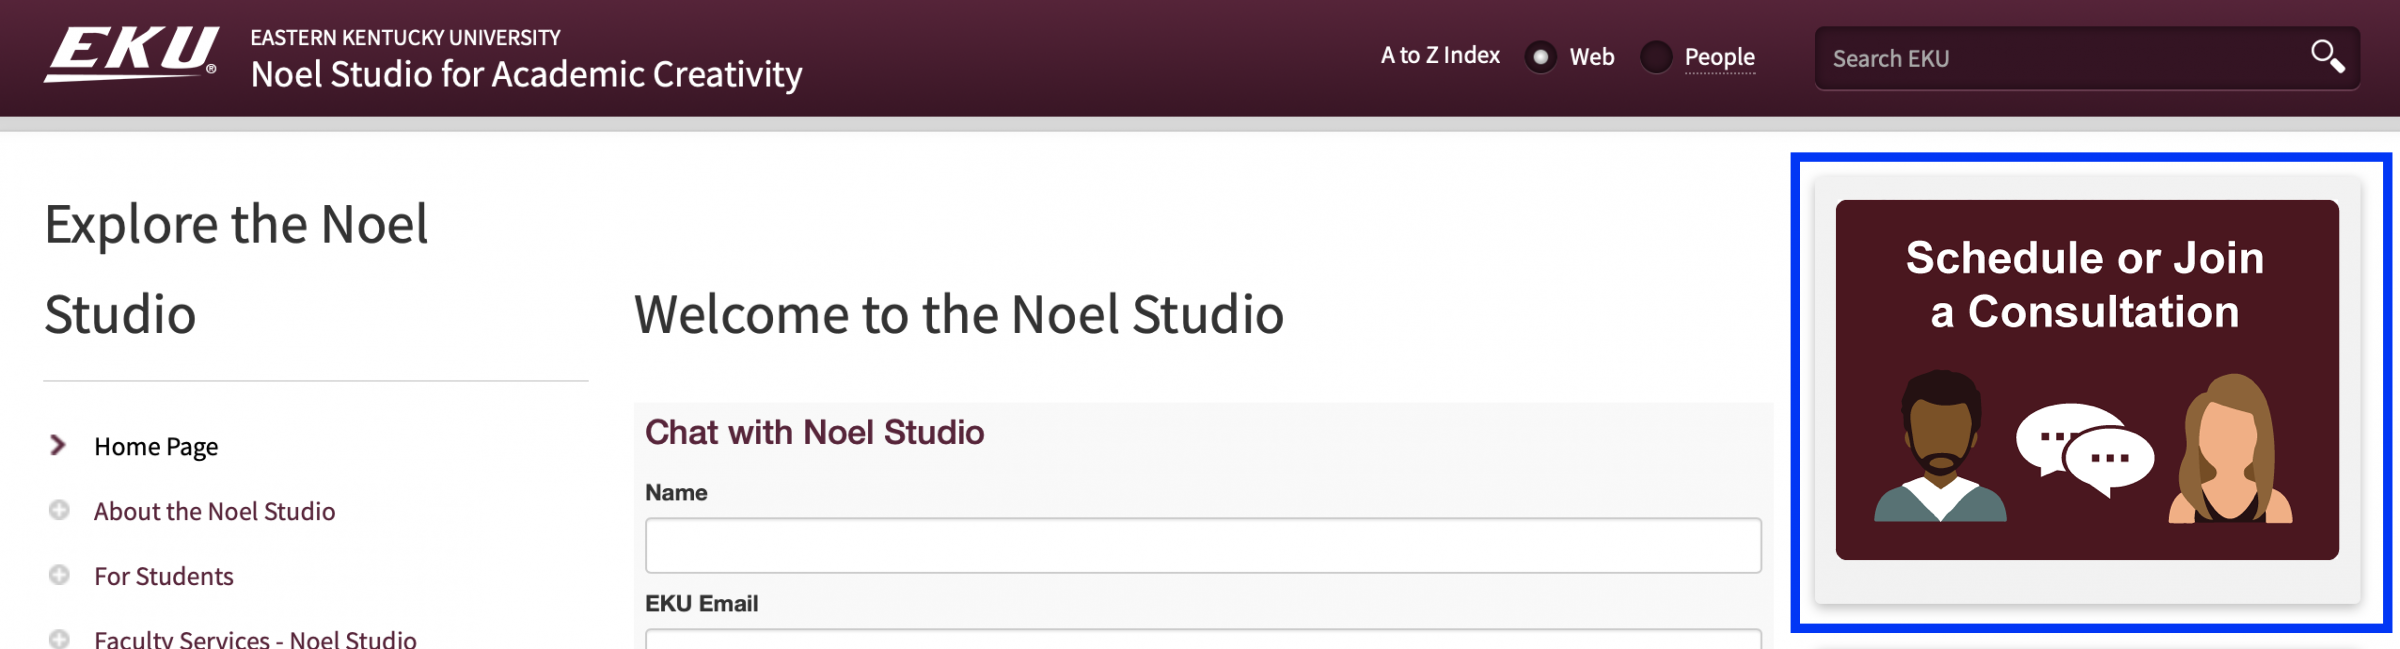 Image of Schedule a Consultation or Room icon on Noel Studio homepage